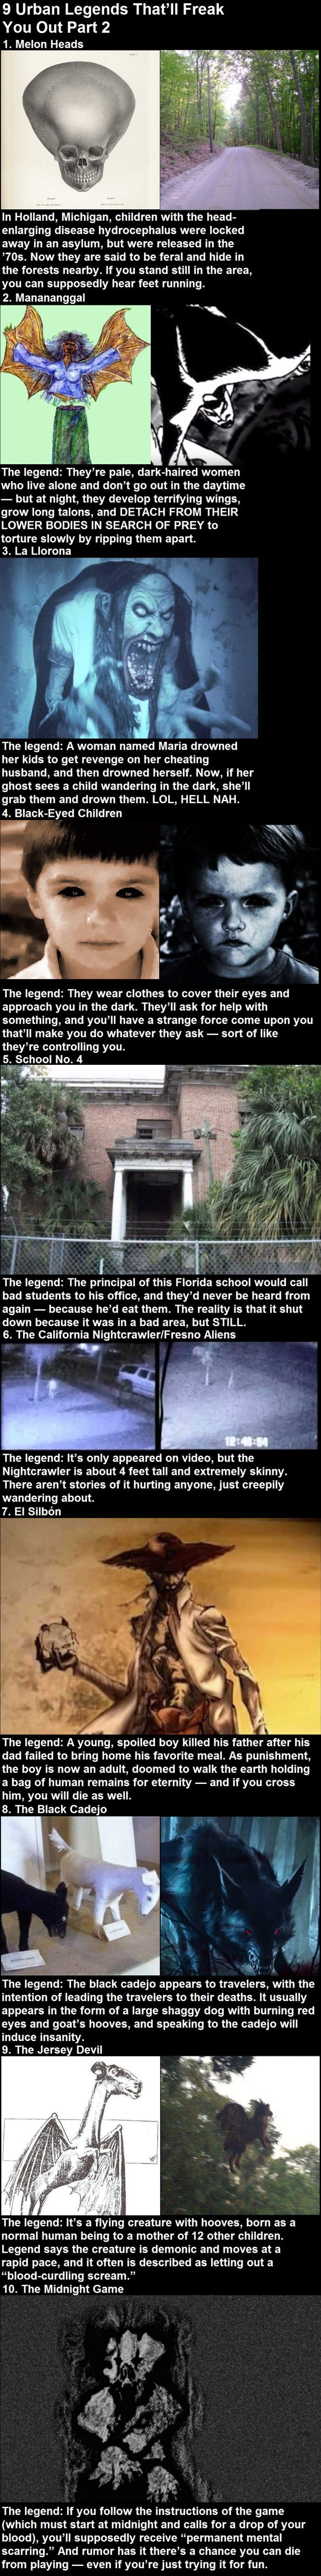 9 Urban Legends That'll Freak You Out